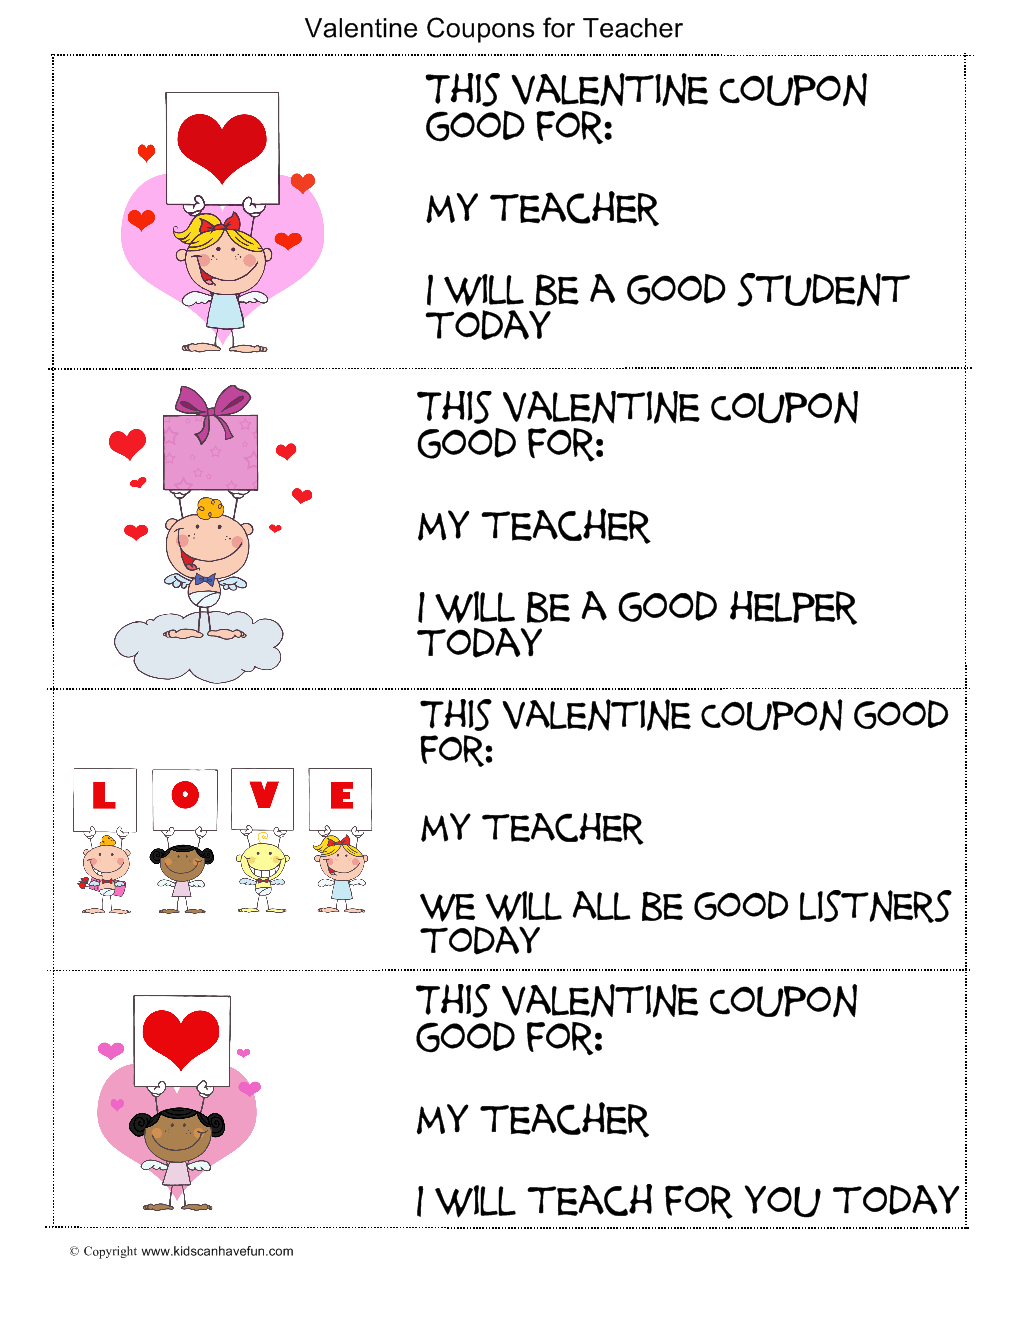 Valentines Day Coupons for Teachers – Valentines Day Coupon